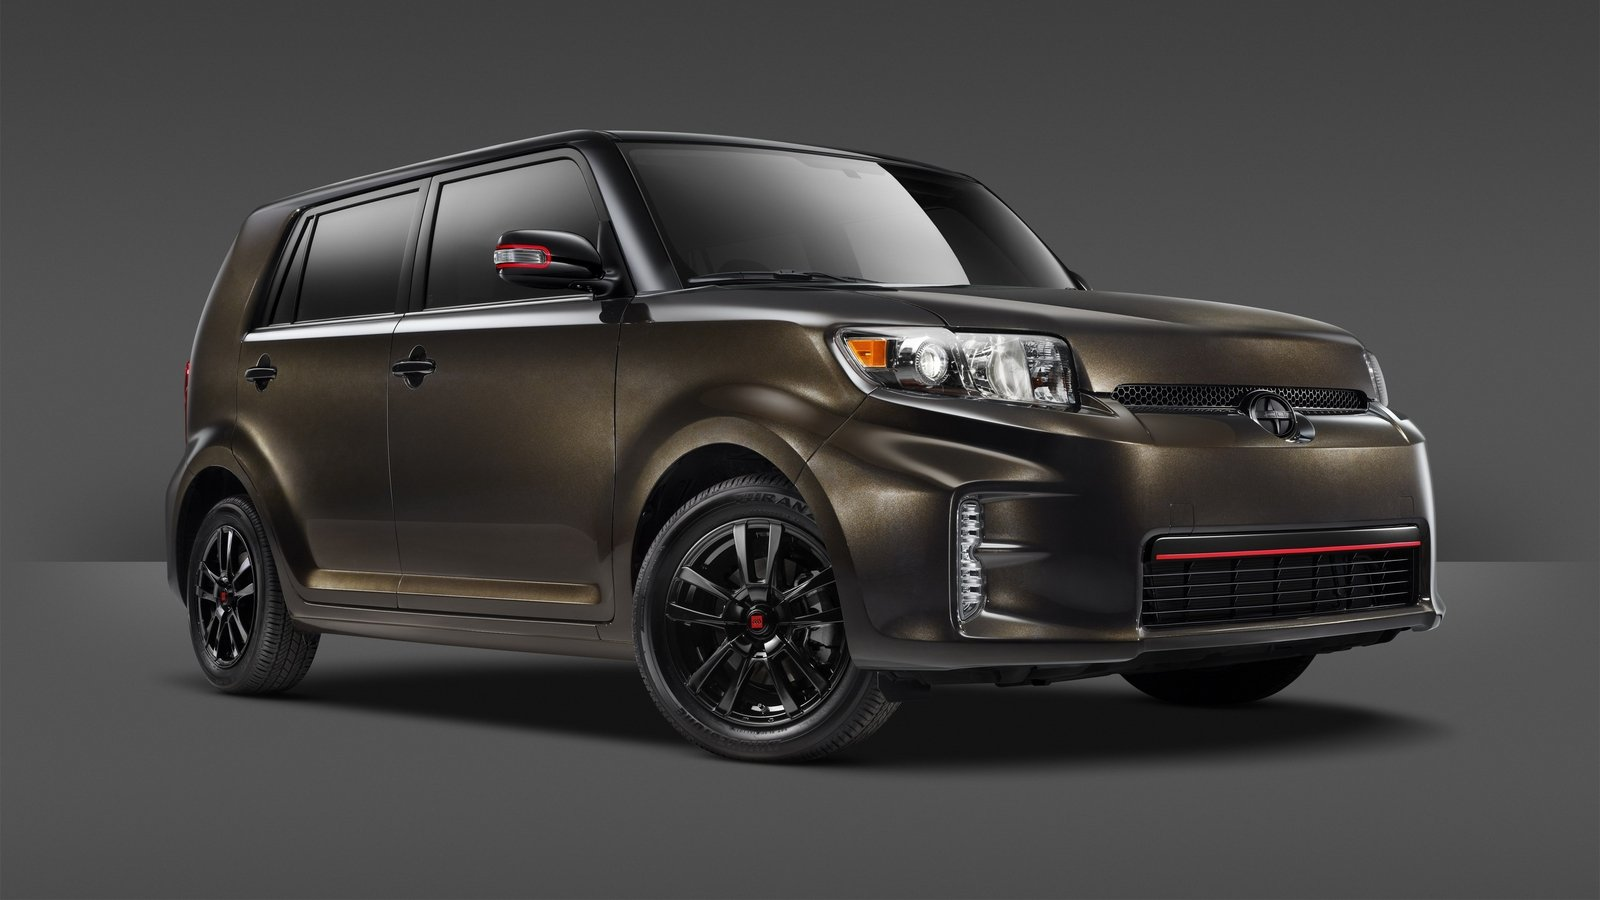 2016 scion xb 686 parklan edition picture 648655 car review top speed. Black Bedroom Furniture Sets. Home Design Ideas